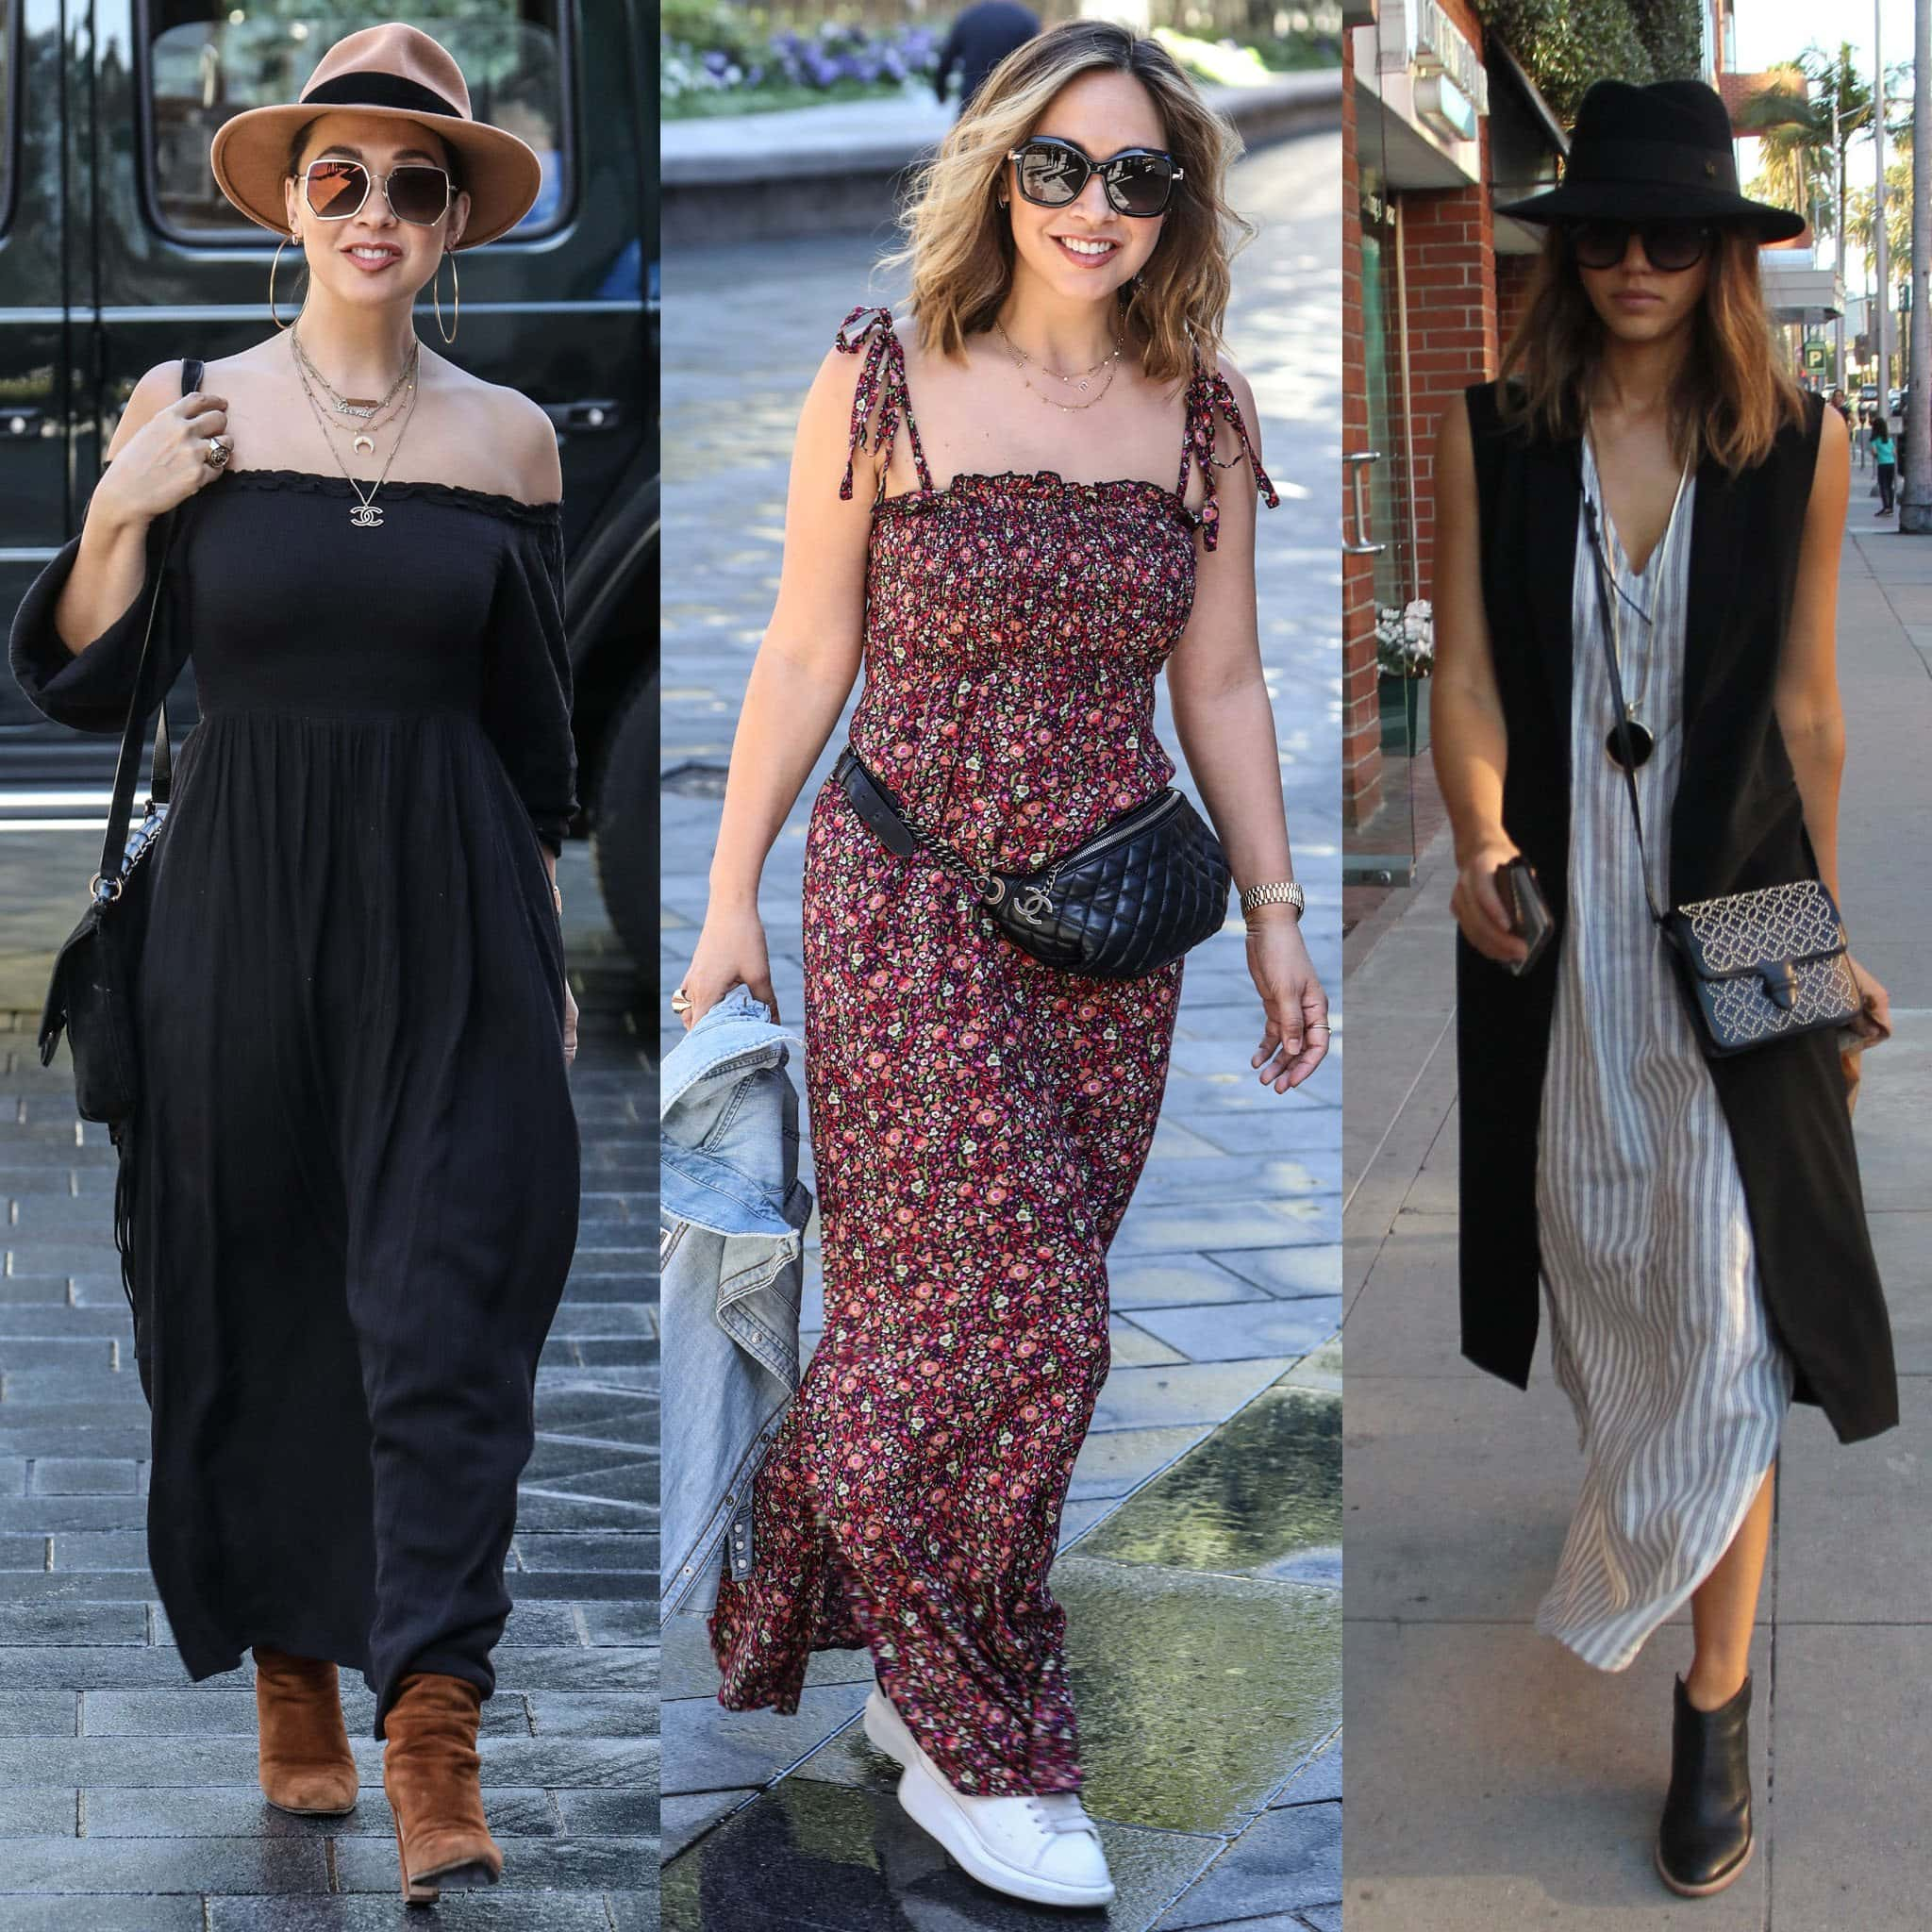 Myleene Klass and Jessica Alba wear maxi dresses with boots and sneakers